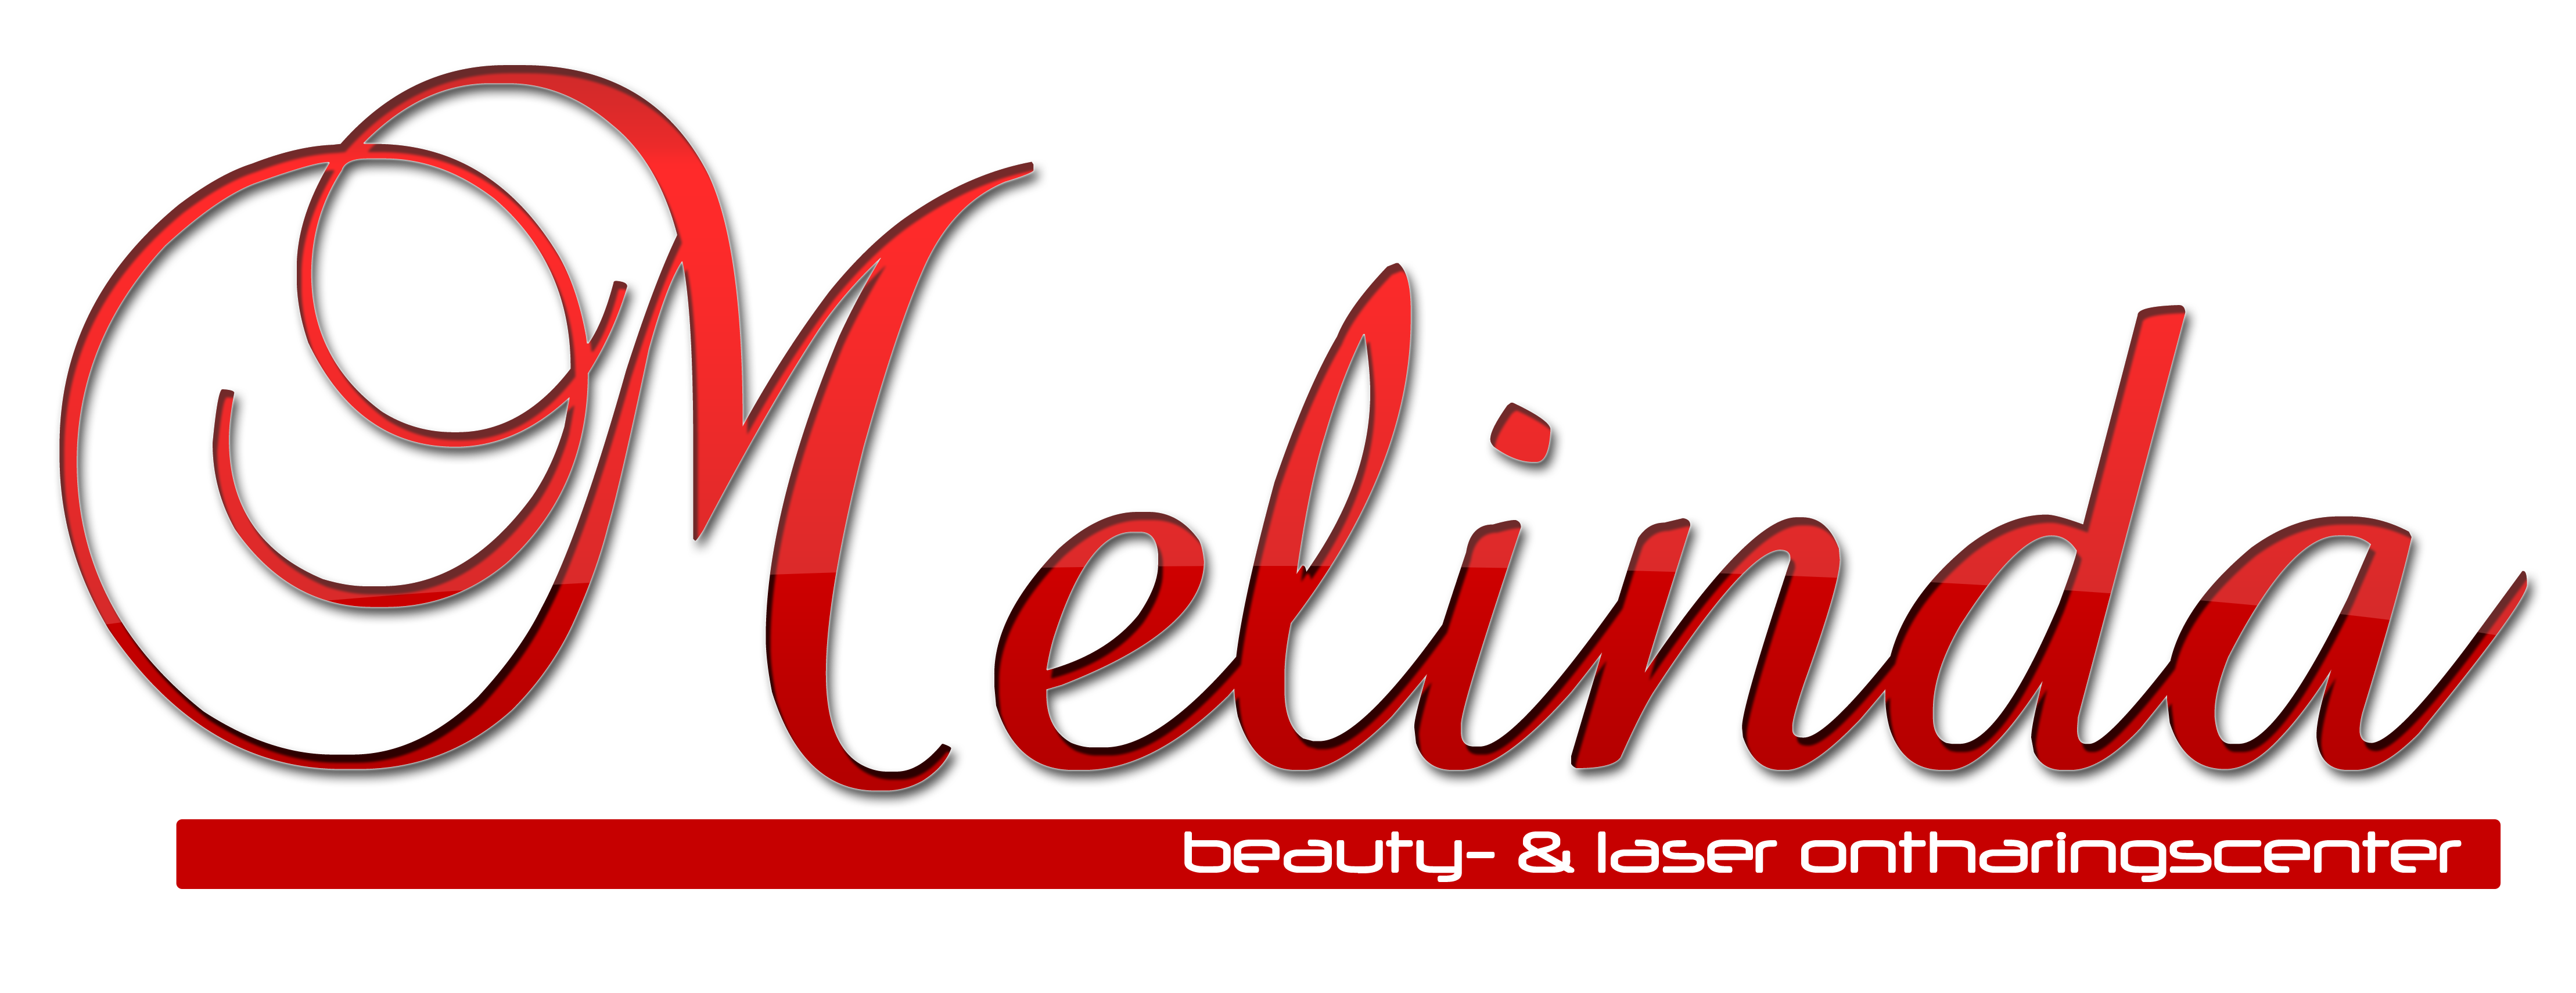 Beautycenter Melinda